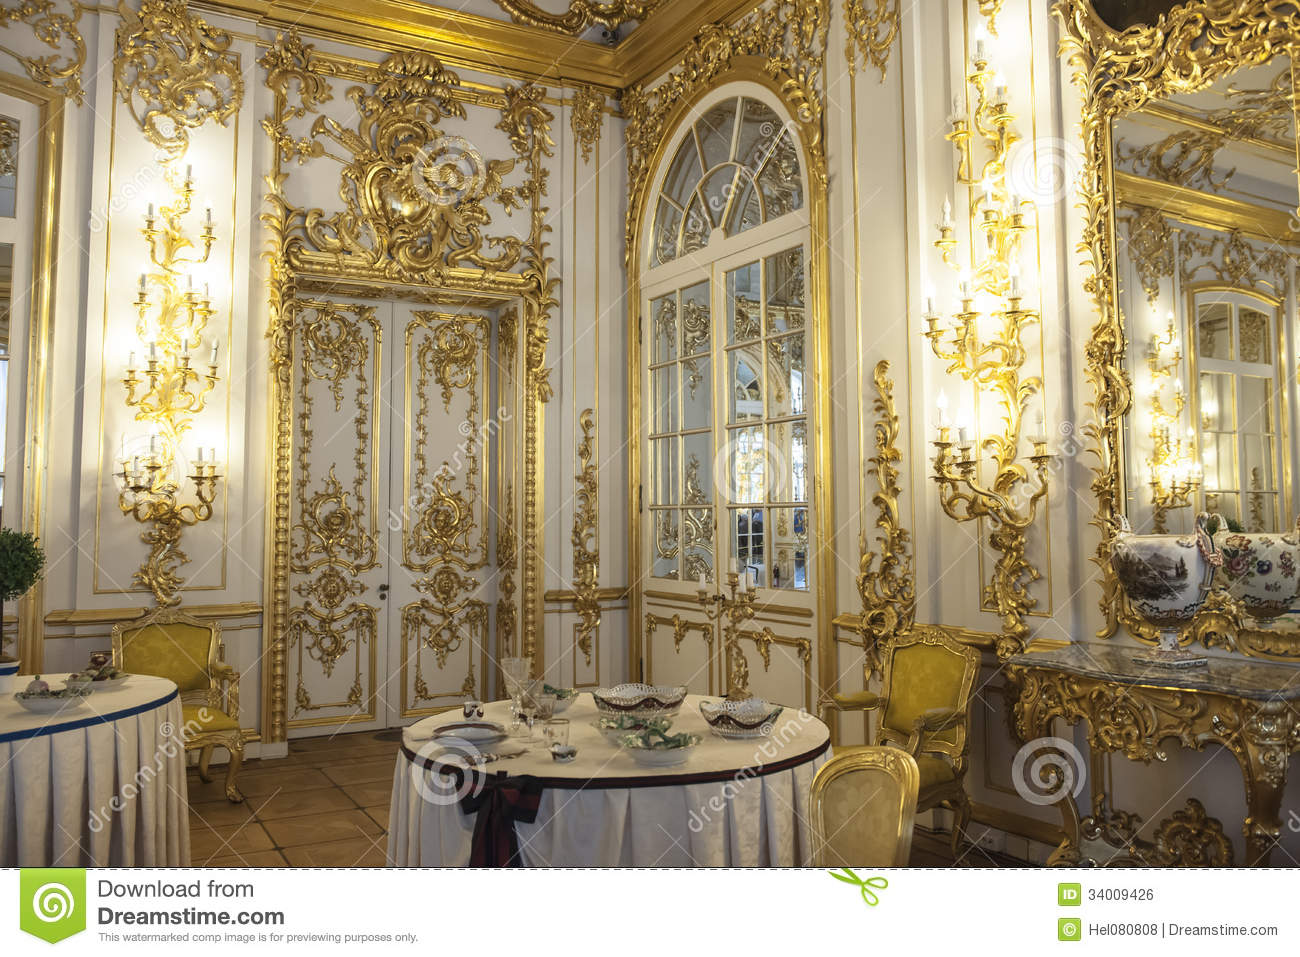 Dining Room Catherine Palace, St. Petersburg Royalty Free Stock Image - Image: 34009426